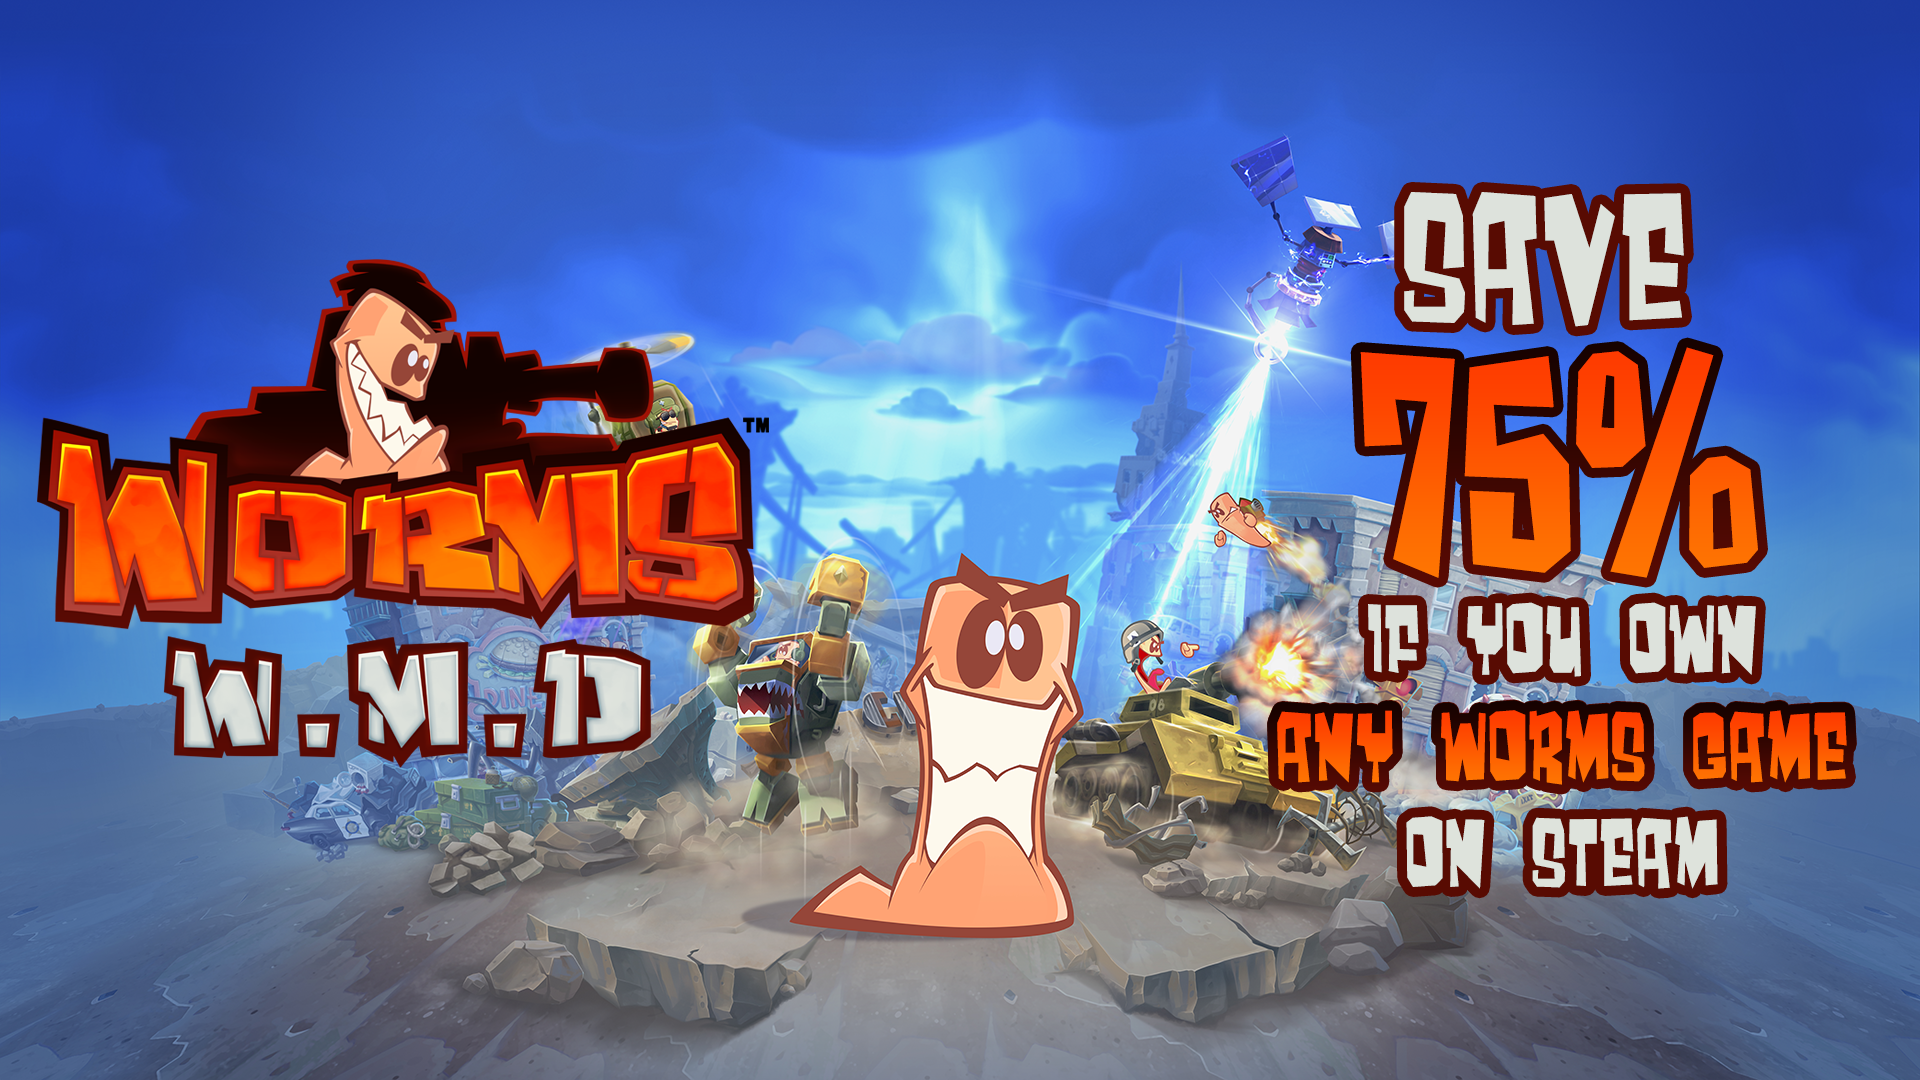 Existing Worms players can now save 75% on Worms W.M.D